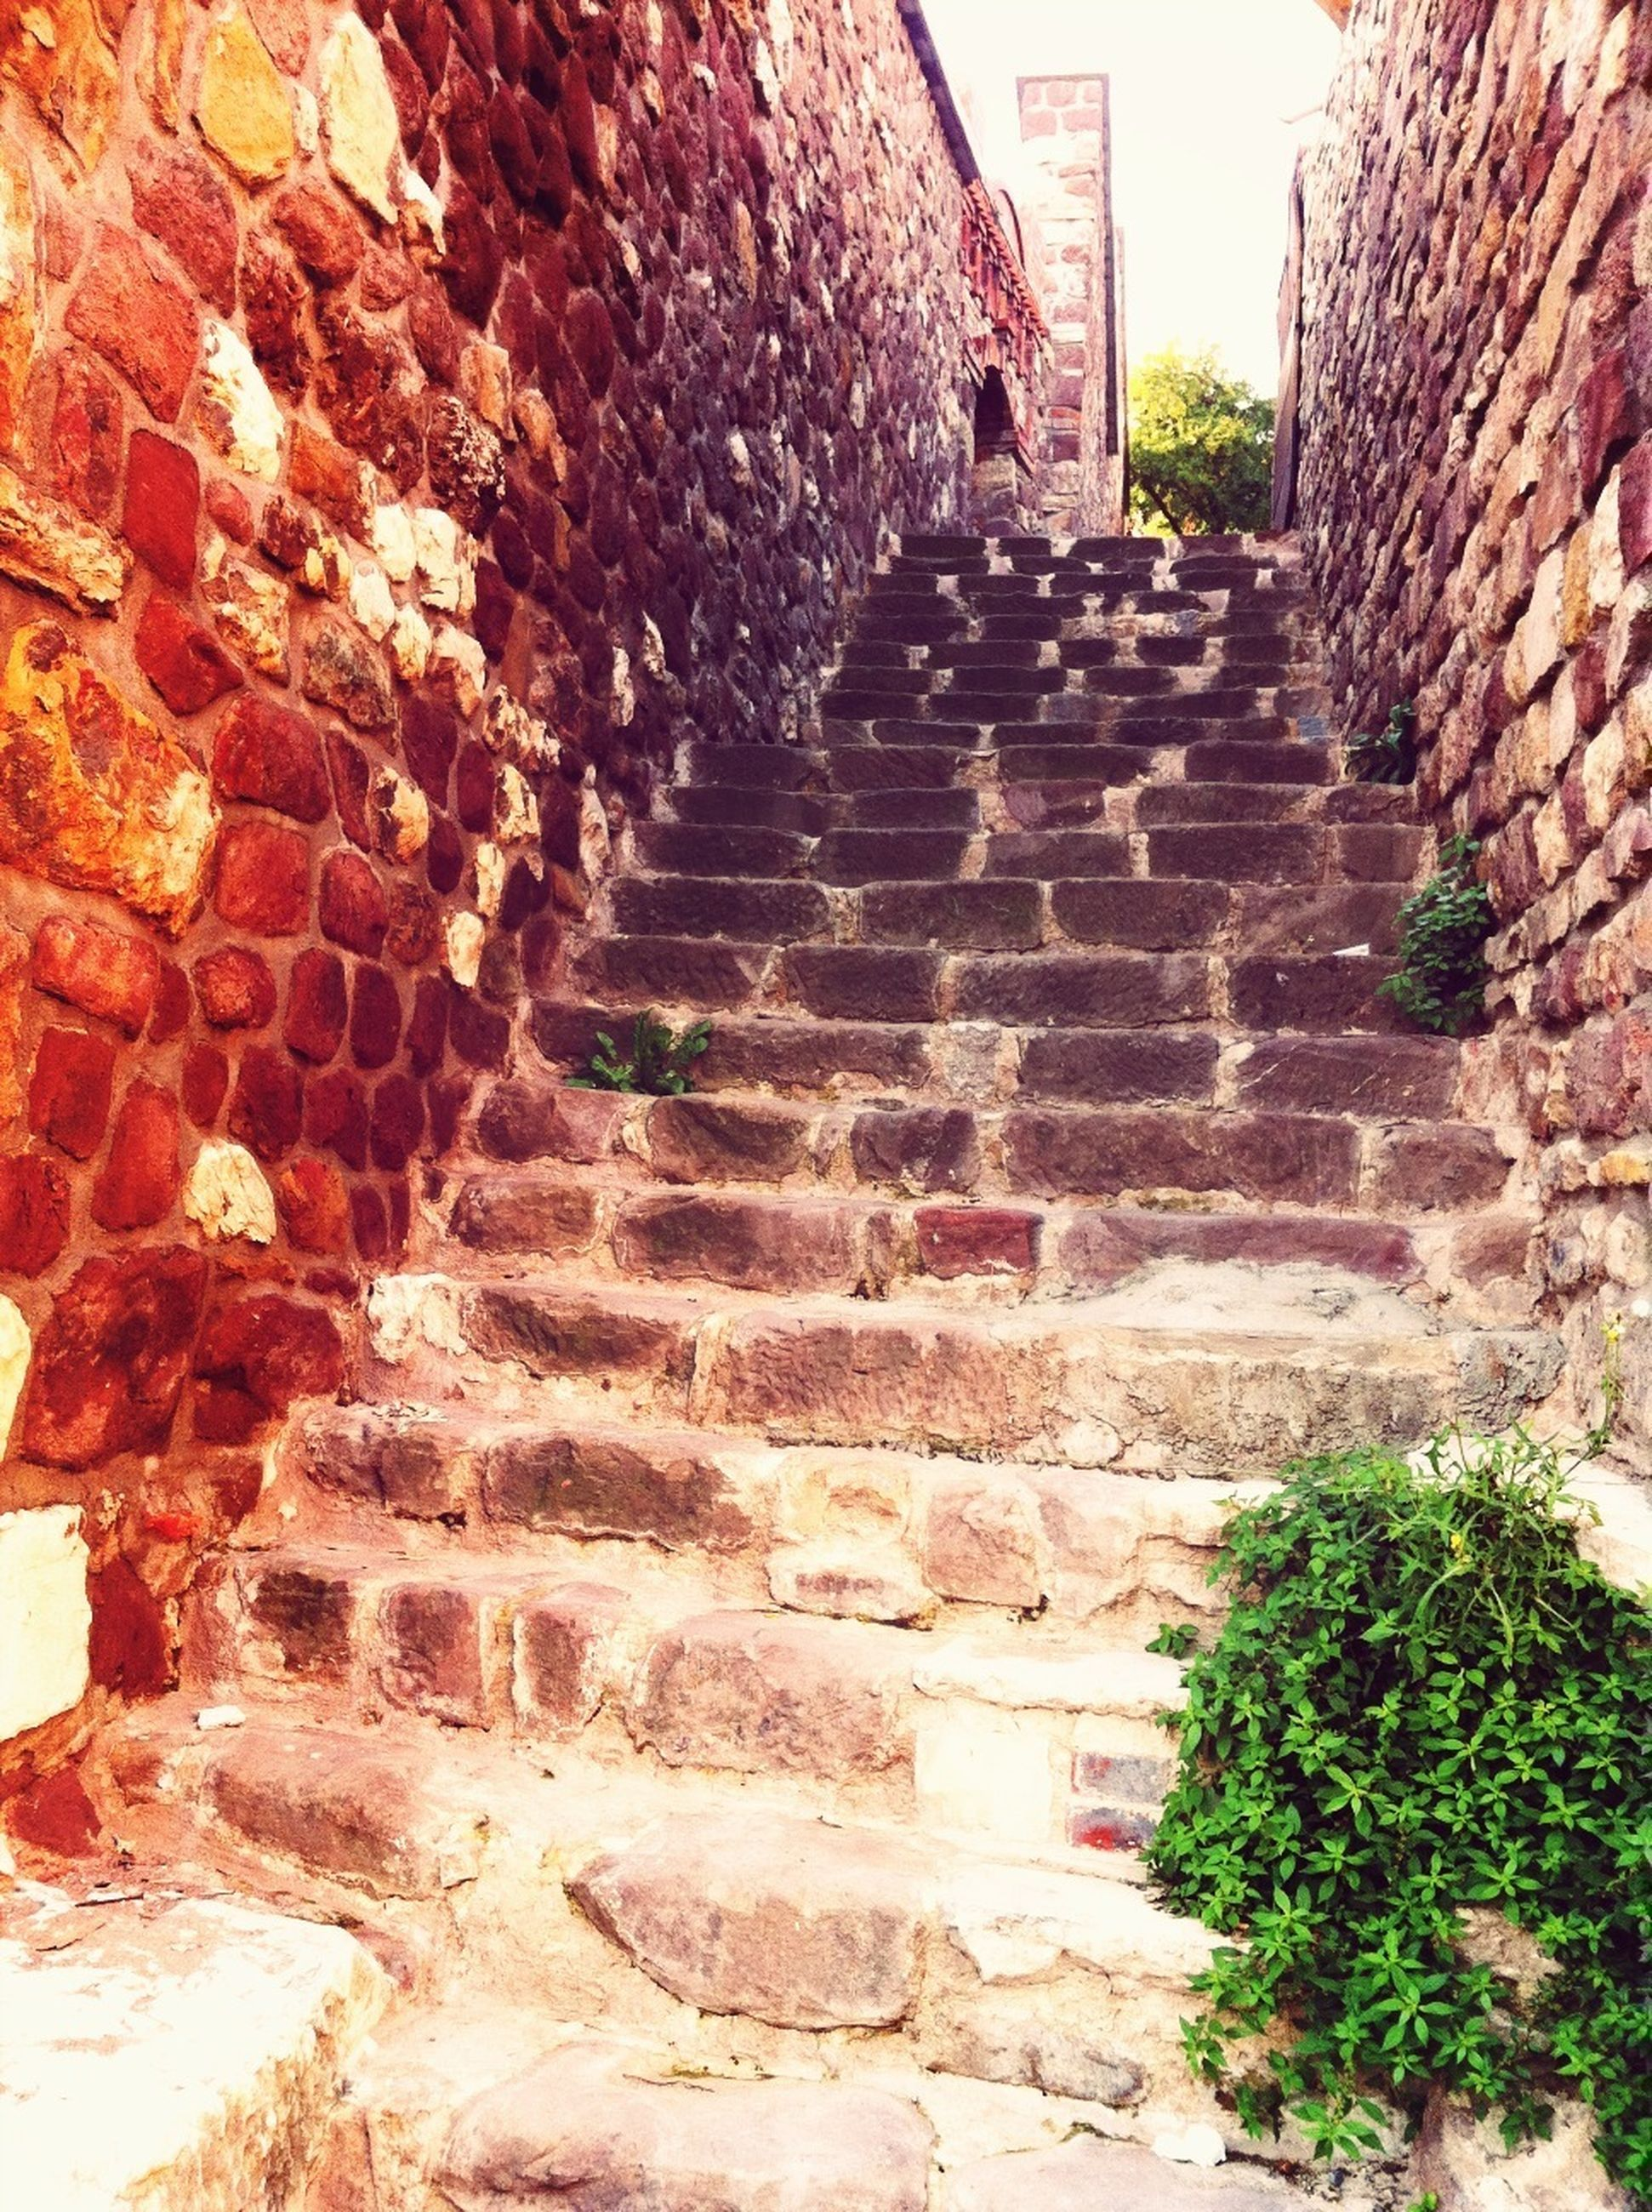 architecture, built structure, building exterior, steps, stone wall, the way forward, history, wall - building feature, steps and staircases, stone material, old, old ruin, plant, ancient, brick wall, day, the past, wall, staircase, sunlight